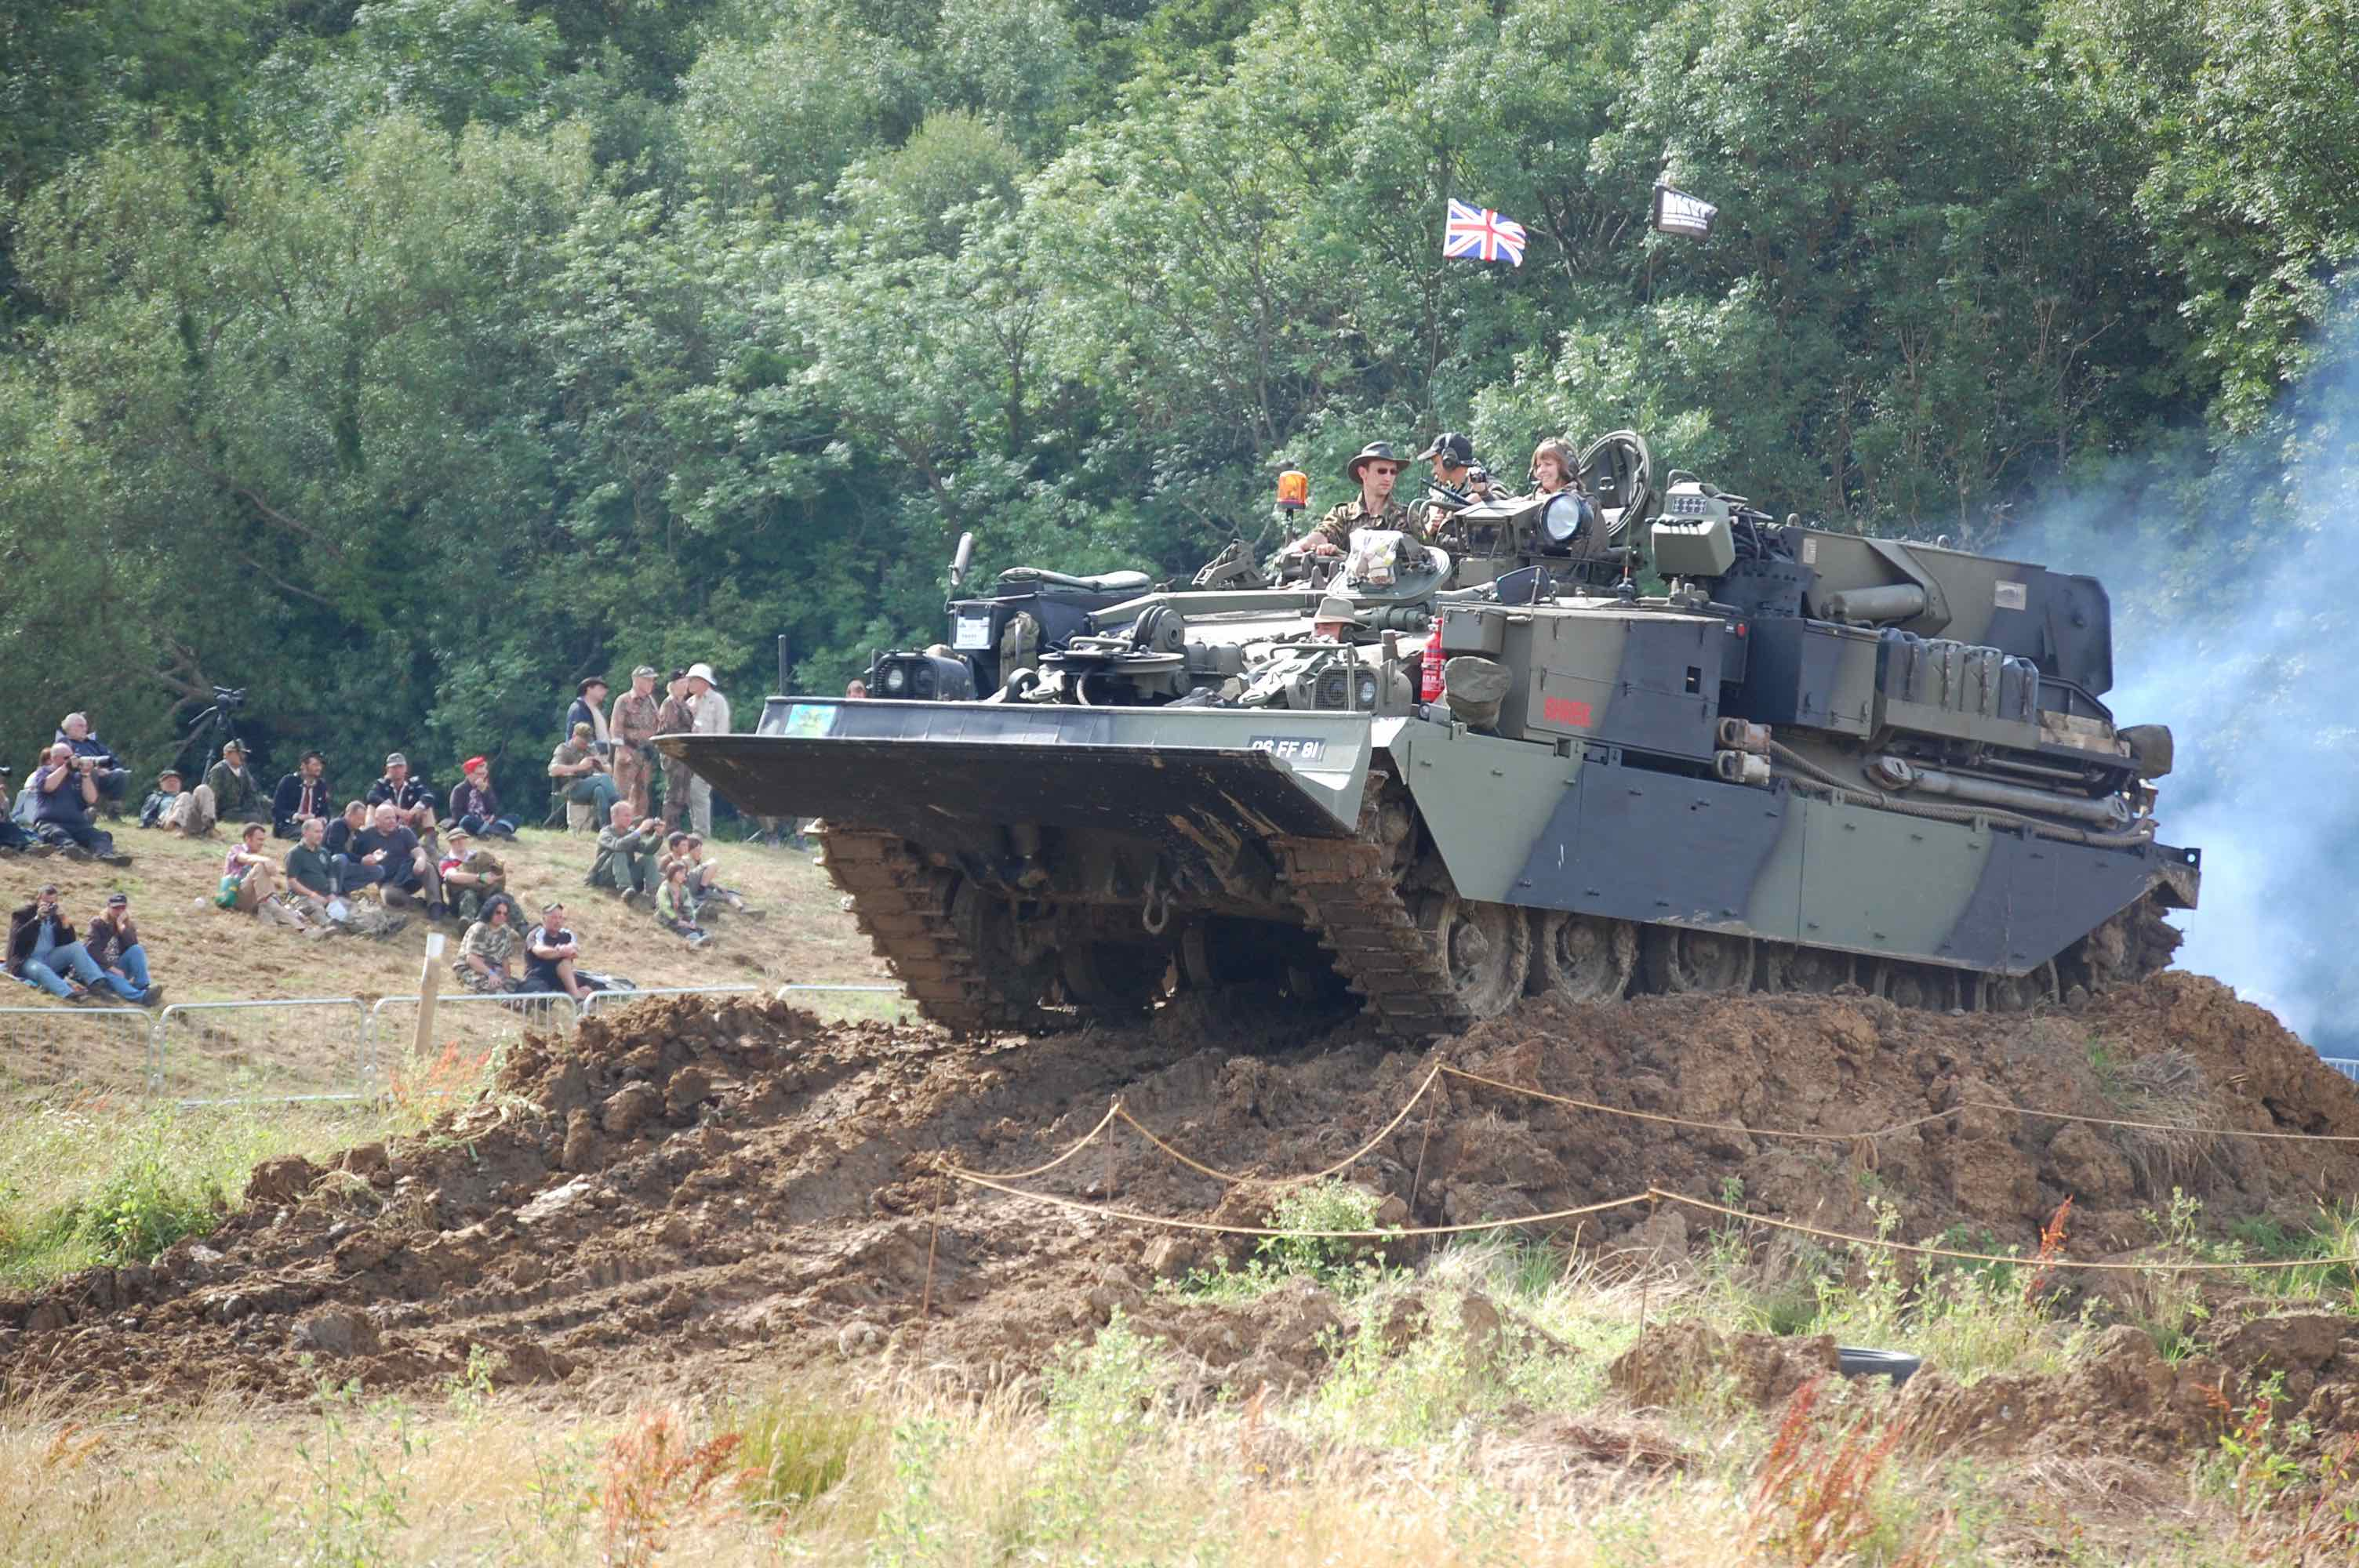 2018 War and Peace Revival Tank Climbs Hill